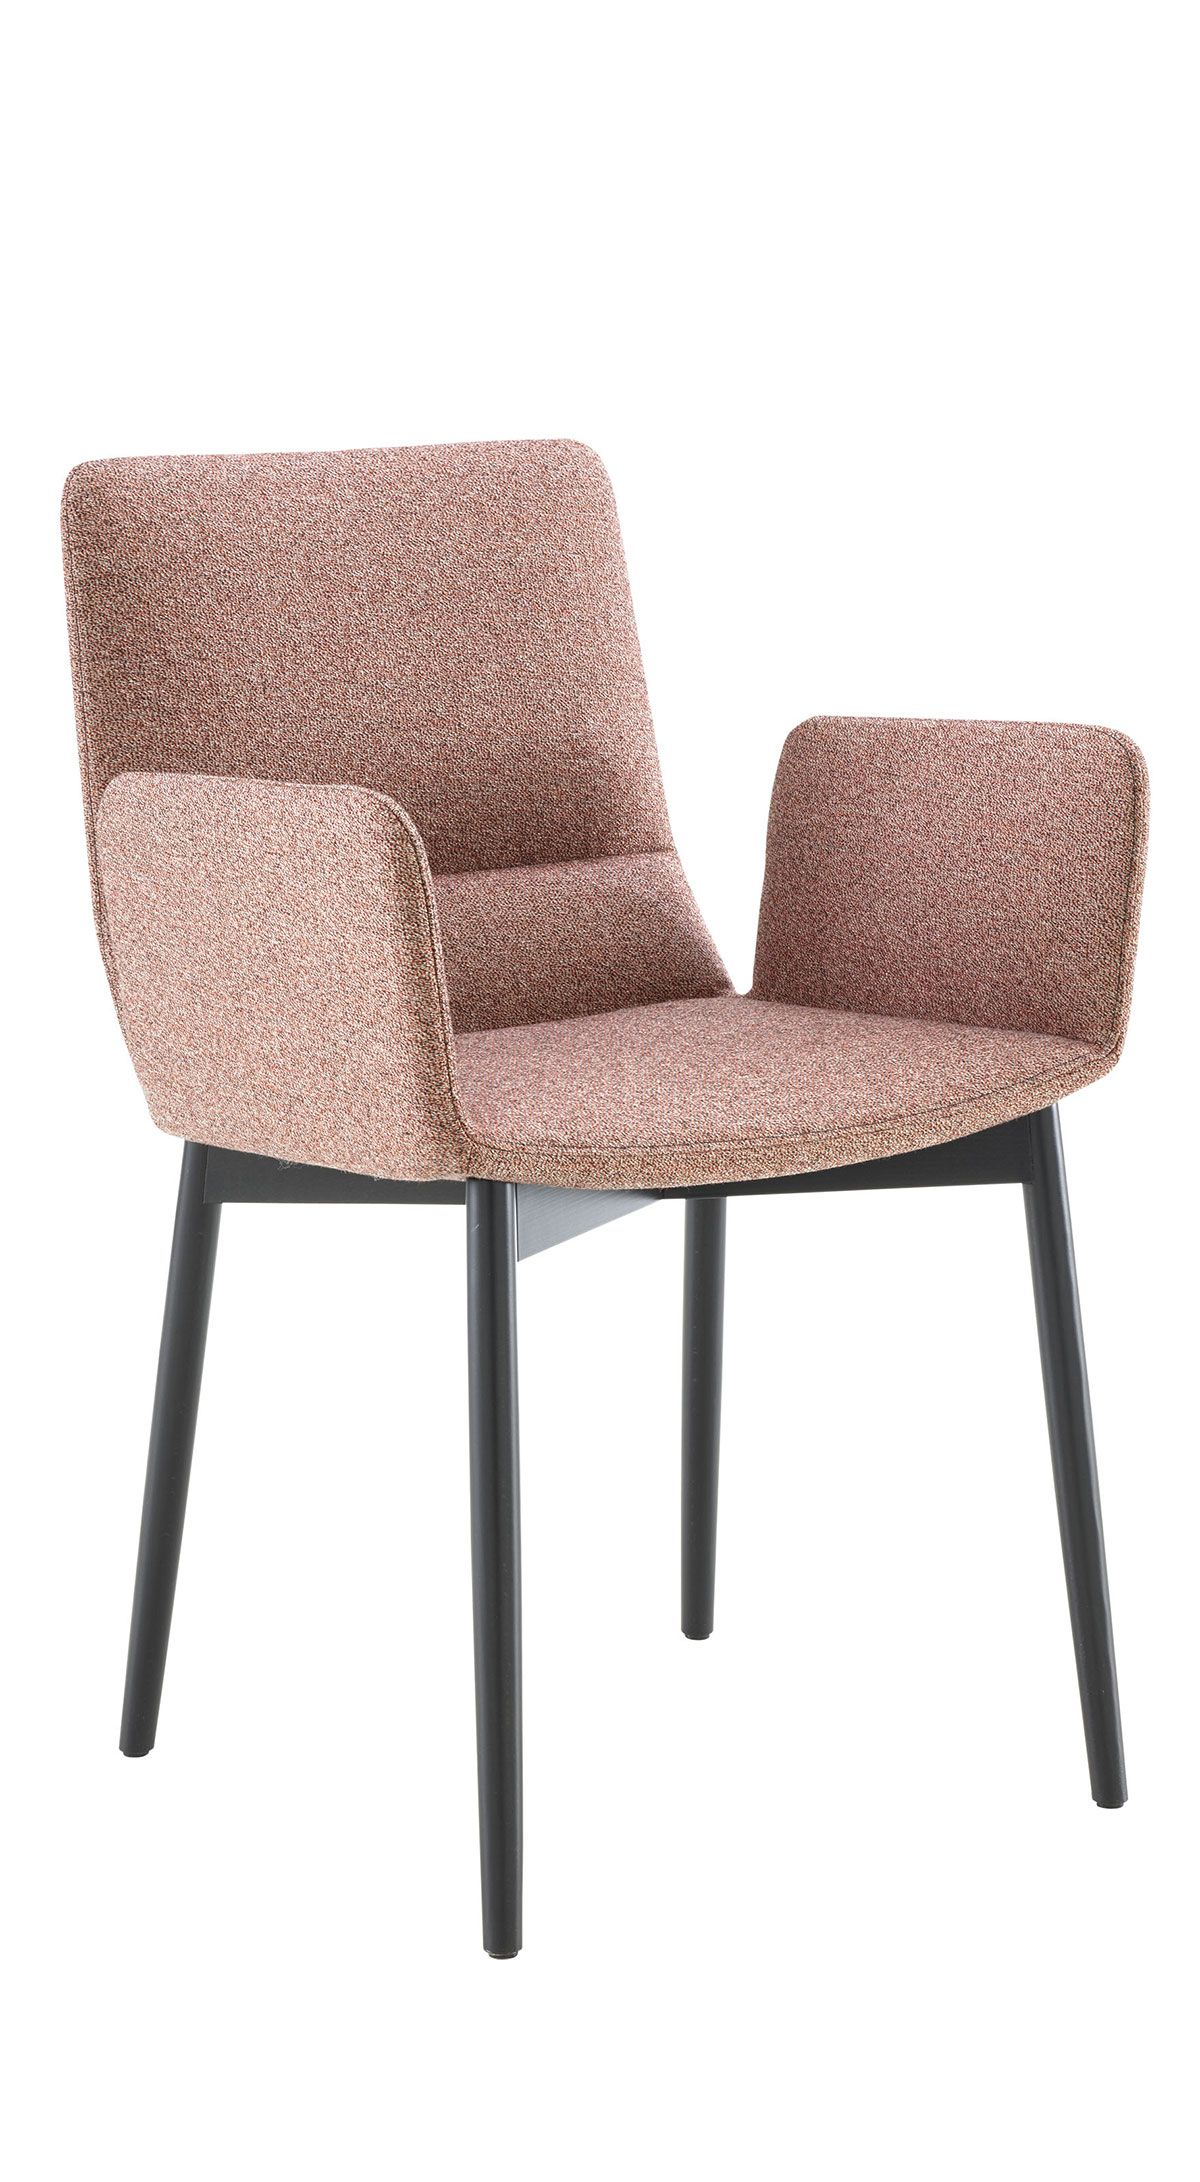 Bendchair Dining Chair Designed By Peter Maly For Ligne Roset